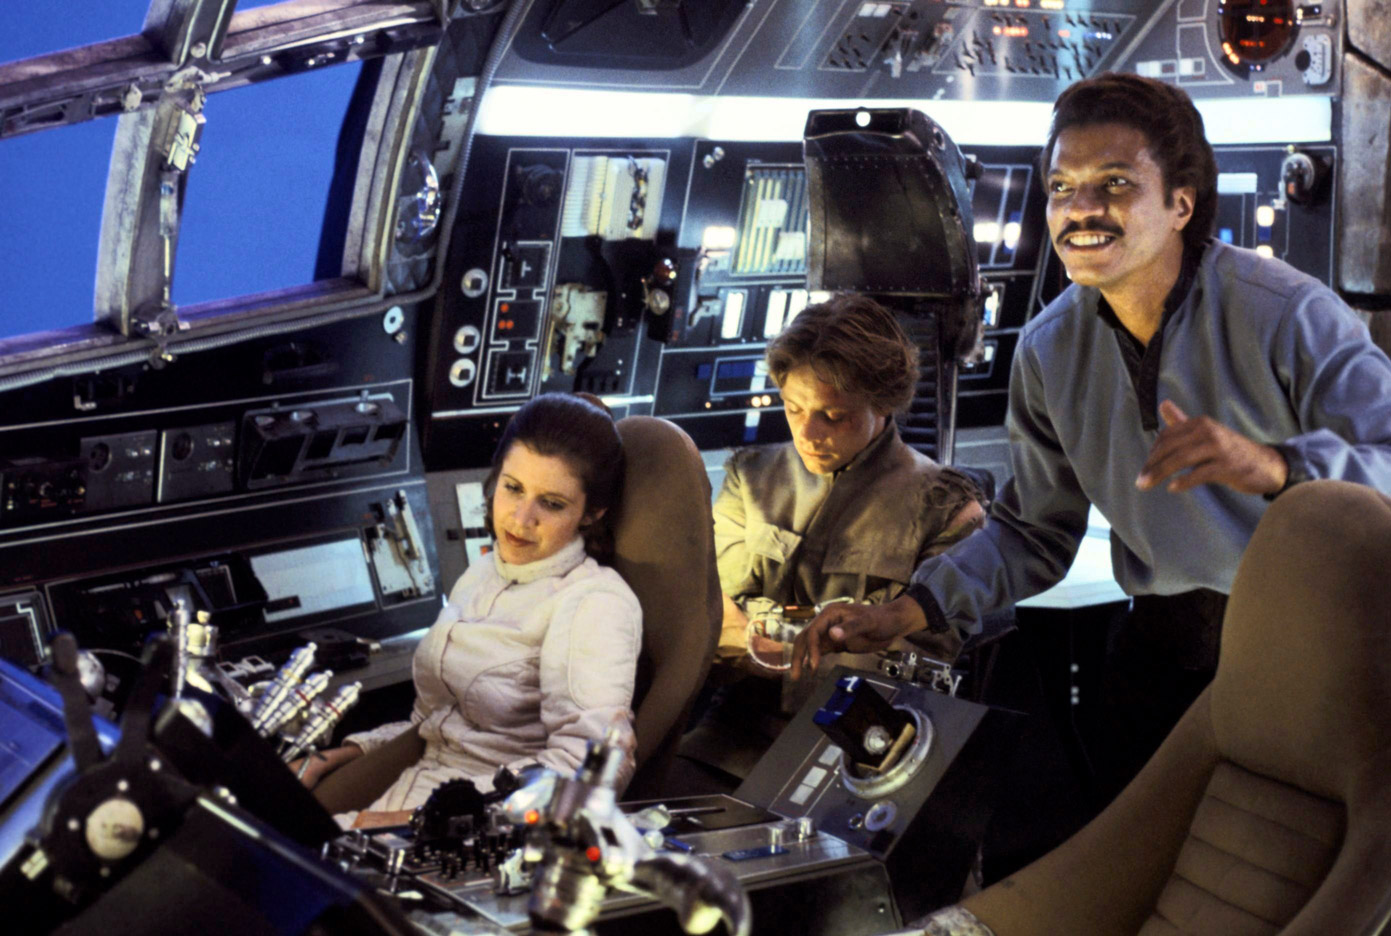 The cockpit of the Millennium Falcon with Princess Leia (Carrie Fisher), Luke Skywalker (Mark Hamill) and Lando Calrissian (Billy Dee Williams), (image: LucasFilm).